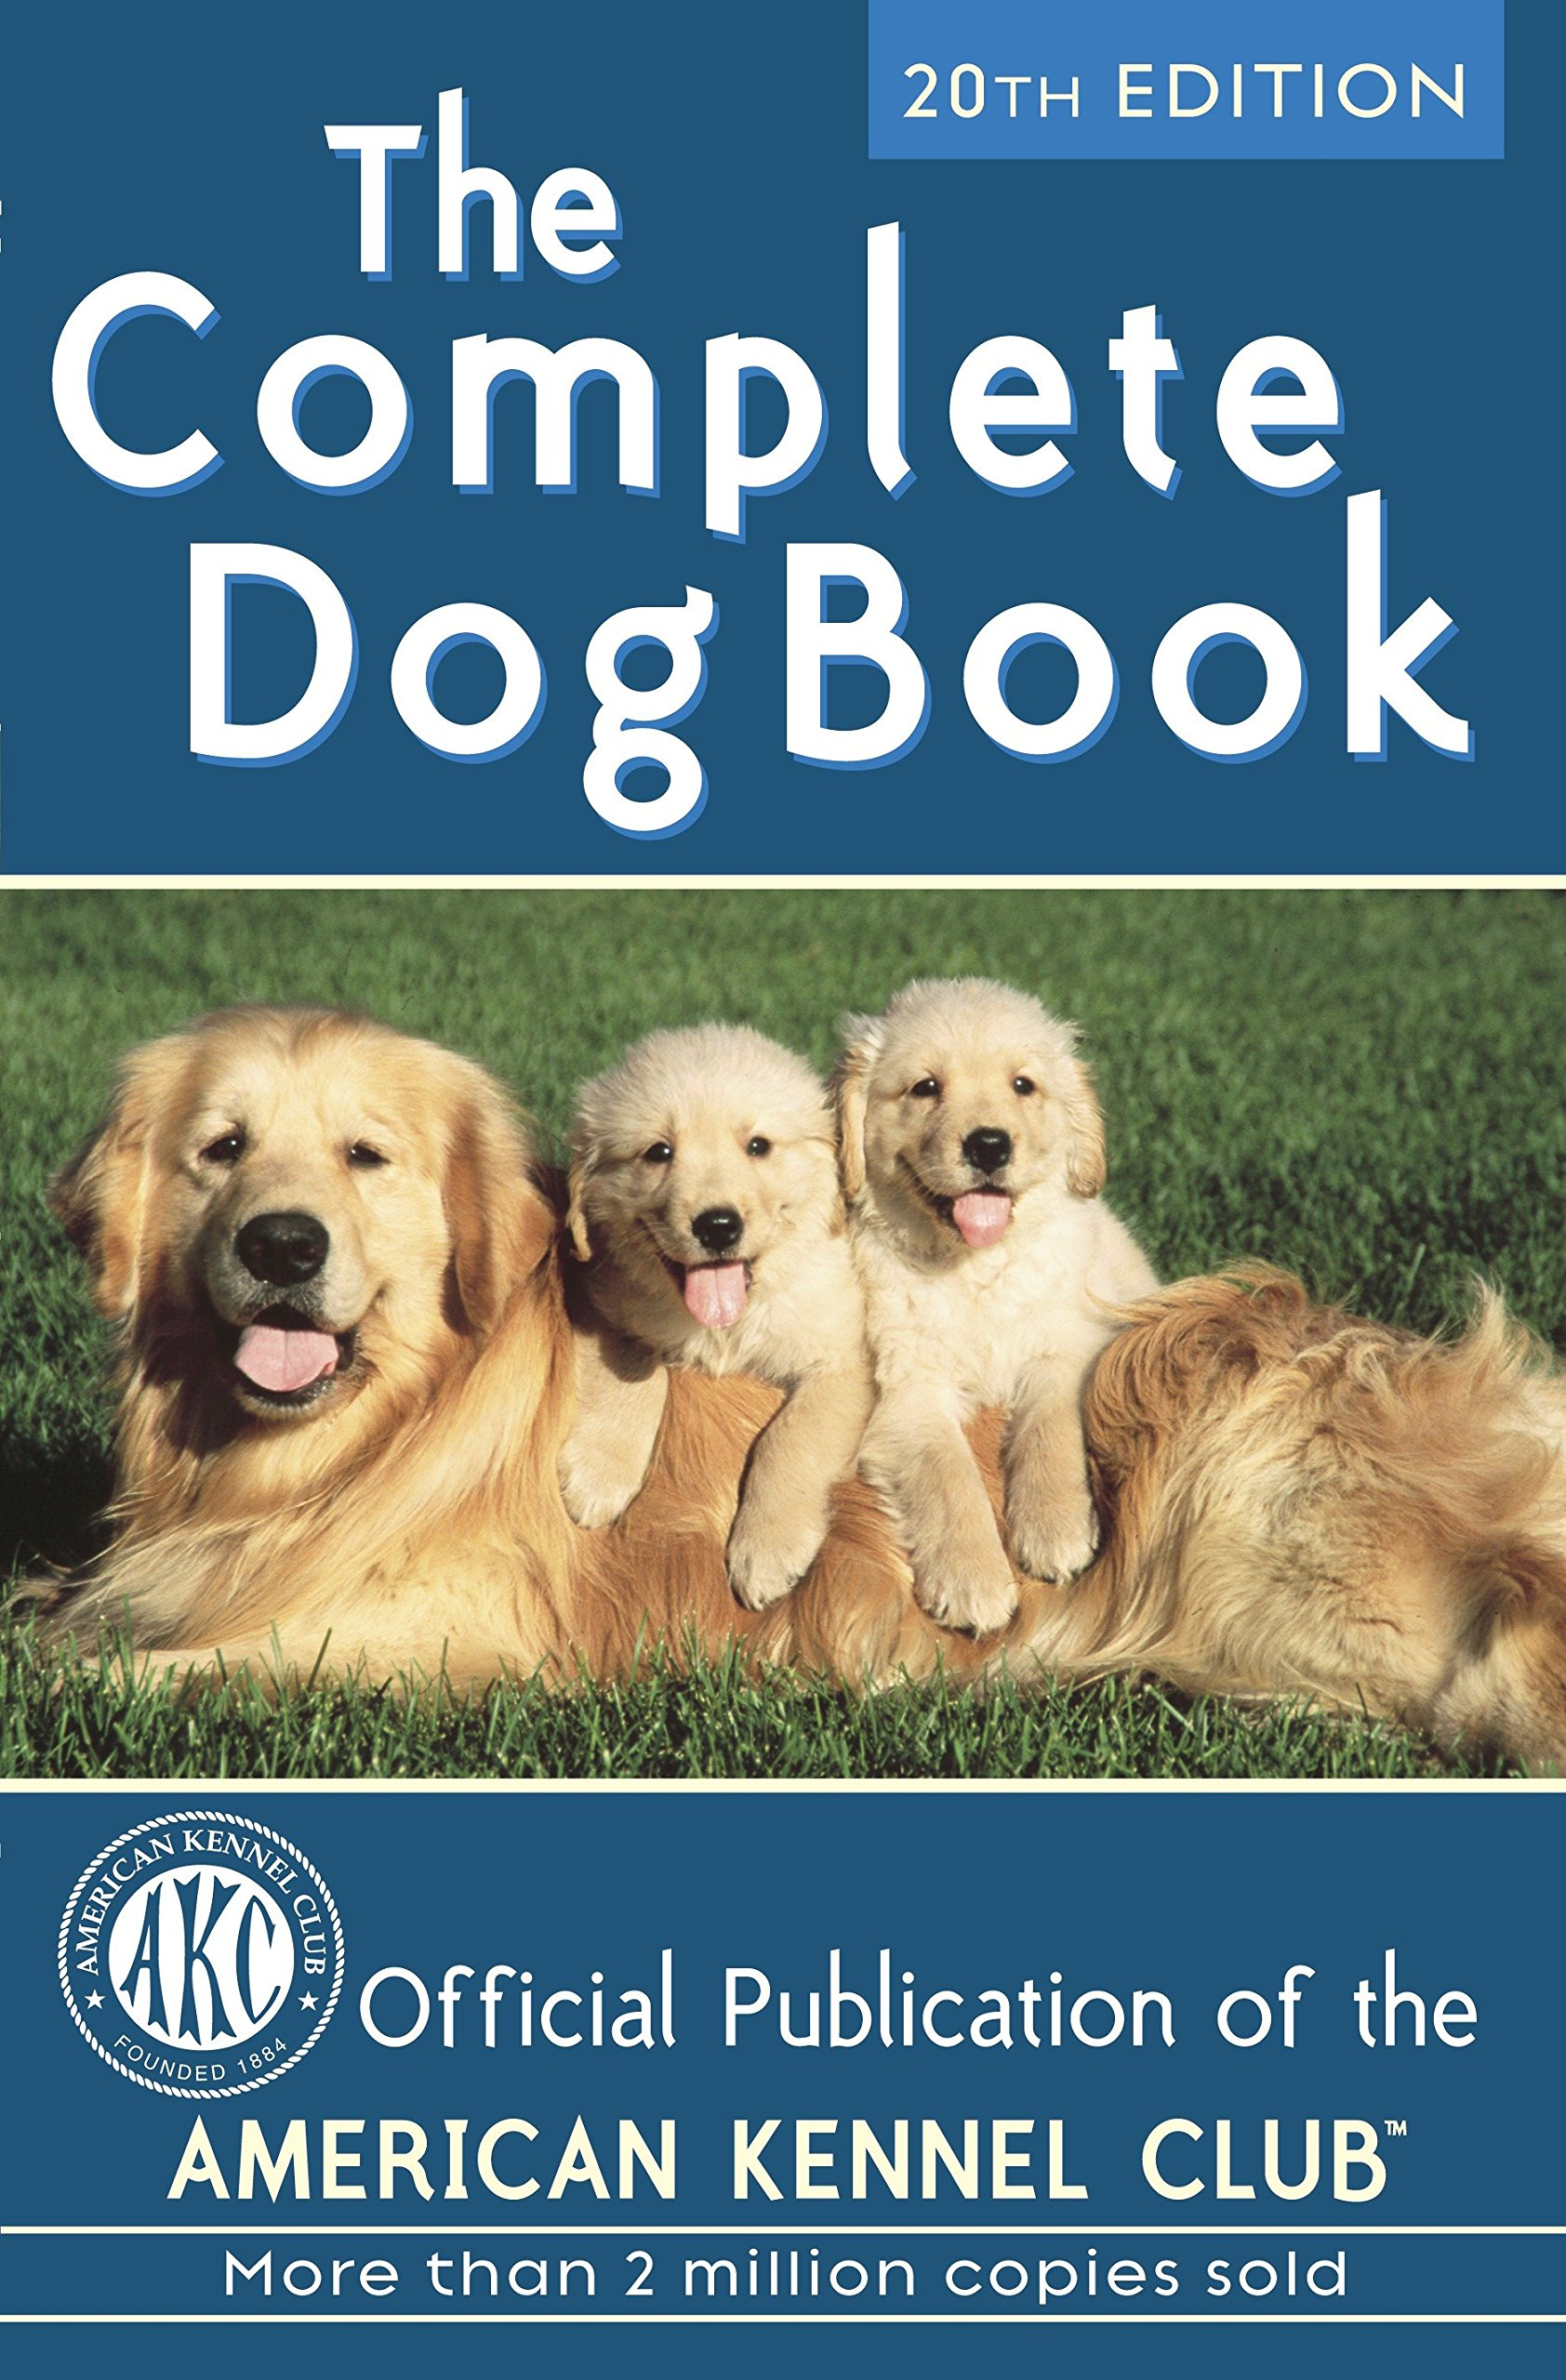 The Complete Dog Book: 20th Edition: American Kennel Club